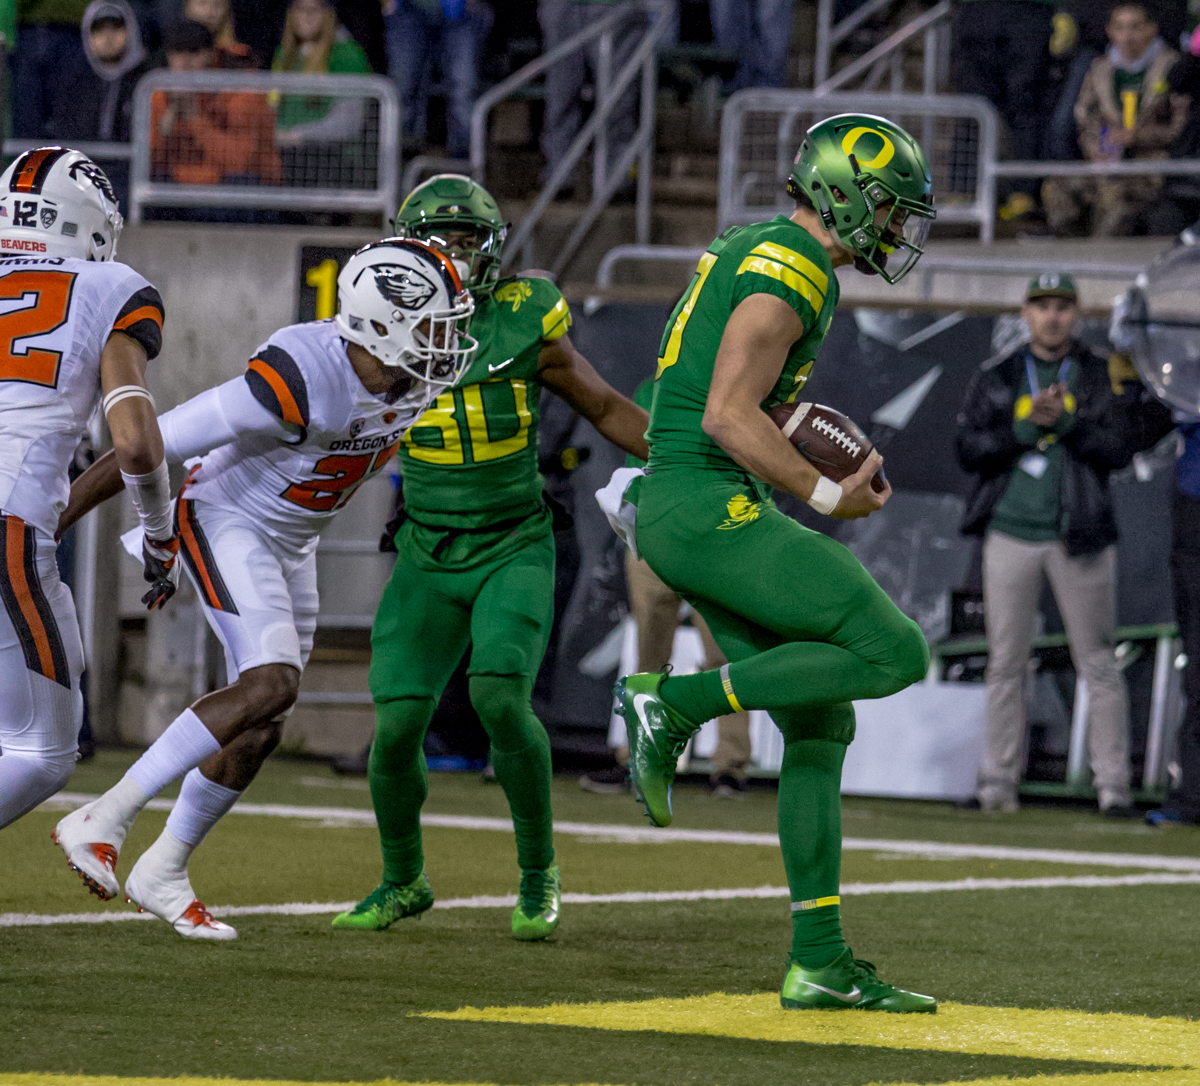 Oregon quarterback Justin Herbert (10) runs the ball for a touchdown. The Oregon Ducks lead the Oregon State Beavers 52 to 7 at the end of the first half of the 121st Civil War game on Saturday, November 25, 2017 at Autzen Stadium in Eugene, Ore. Photo by Ben Lonergan, Oregon News Lab